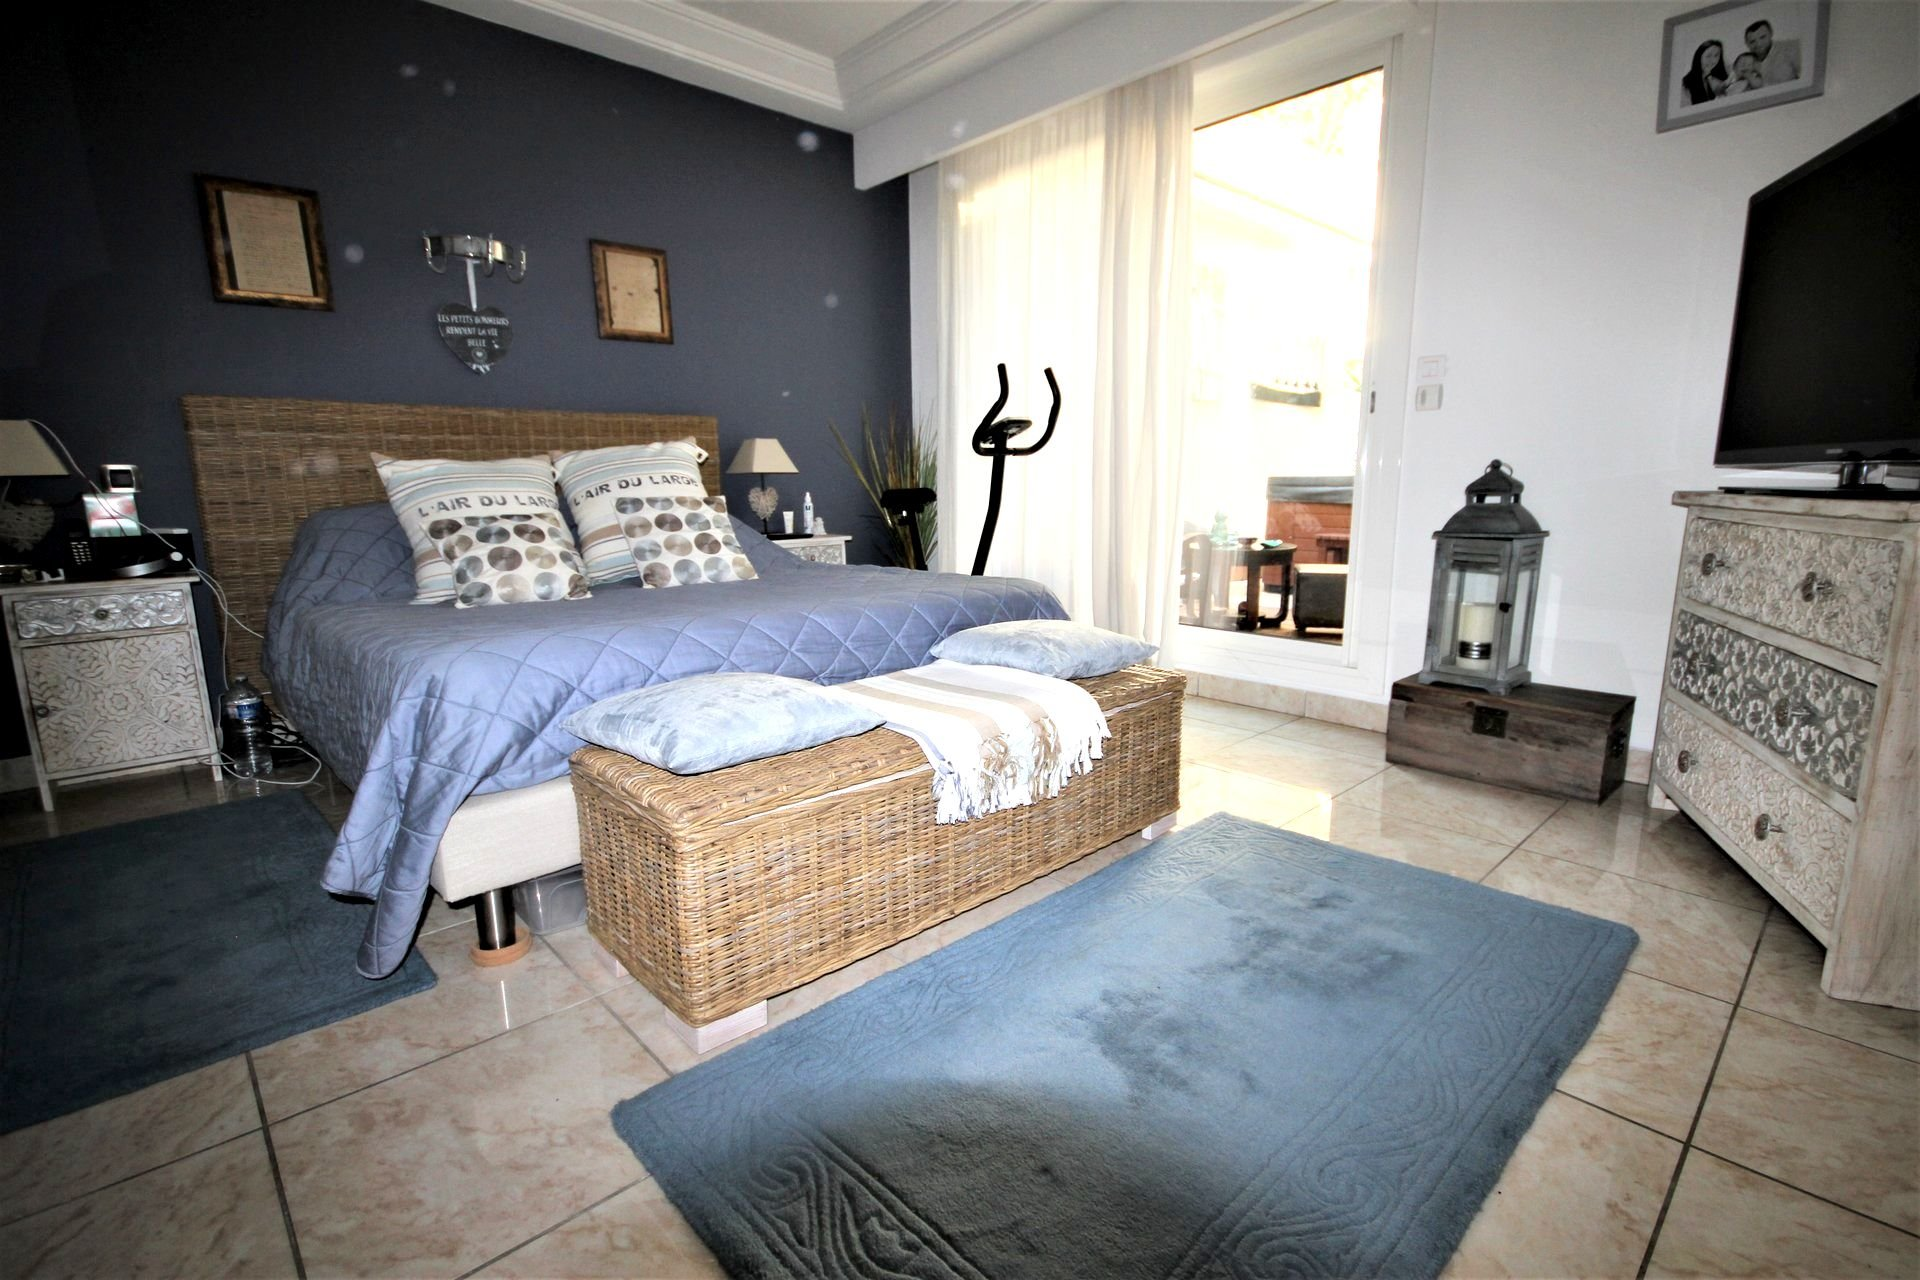 VENTE APPARTEMENT 4 PIECES 180m² CANNES 45m² TERRASSE